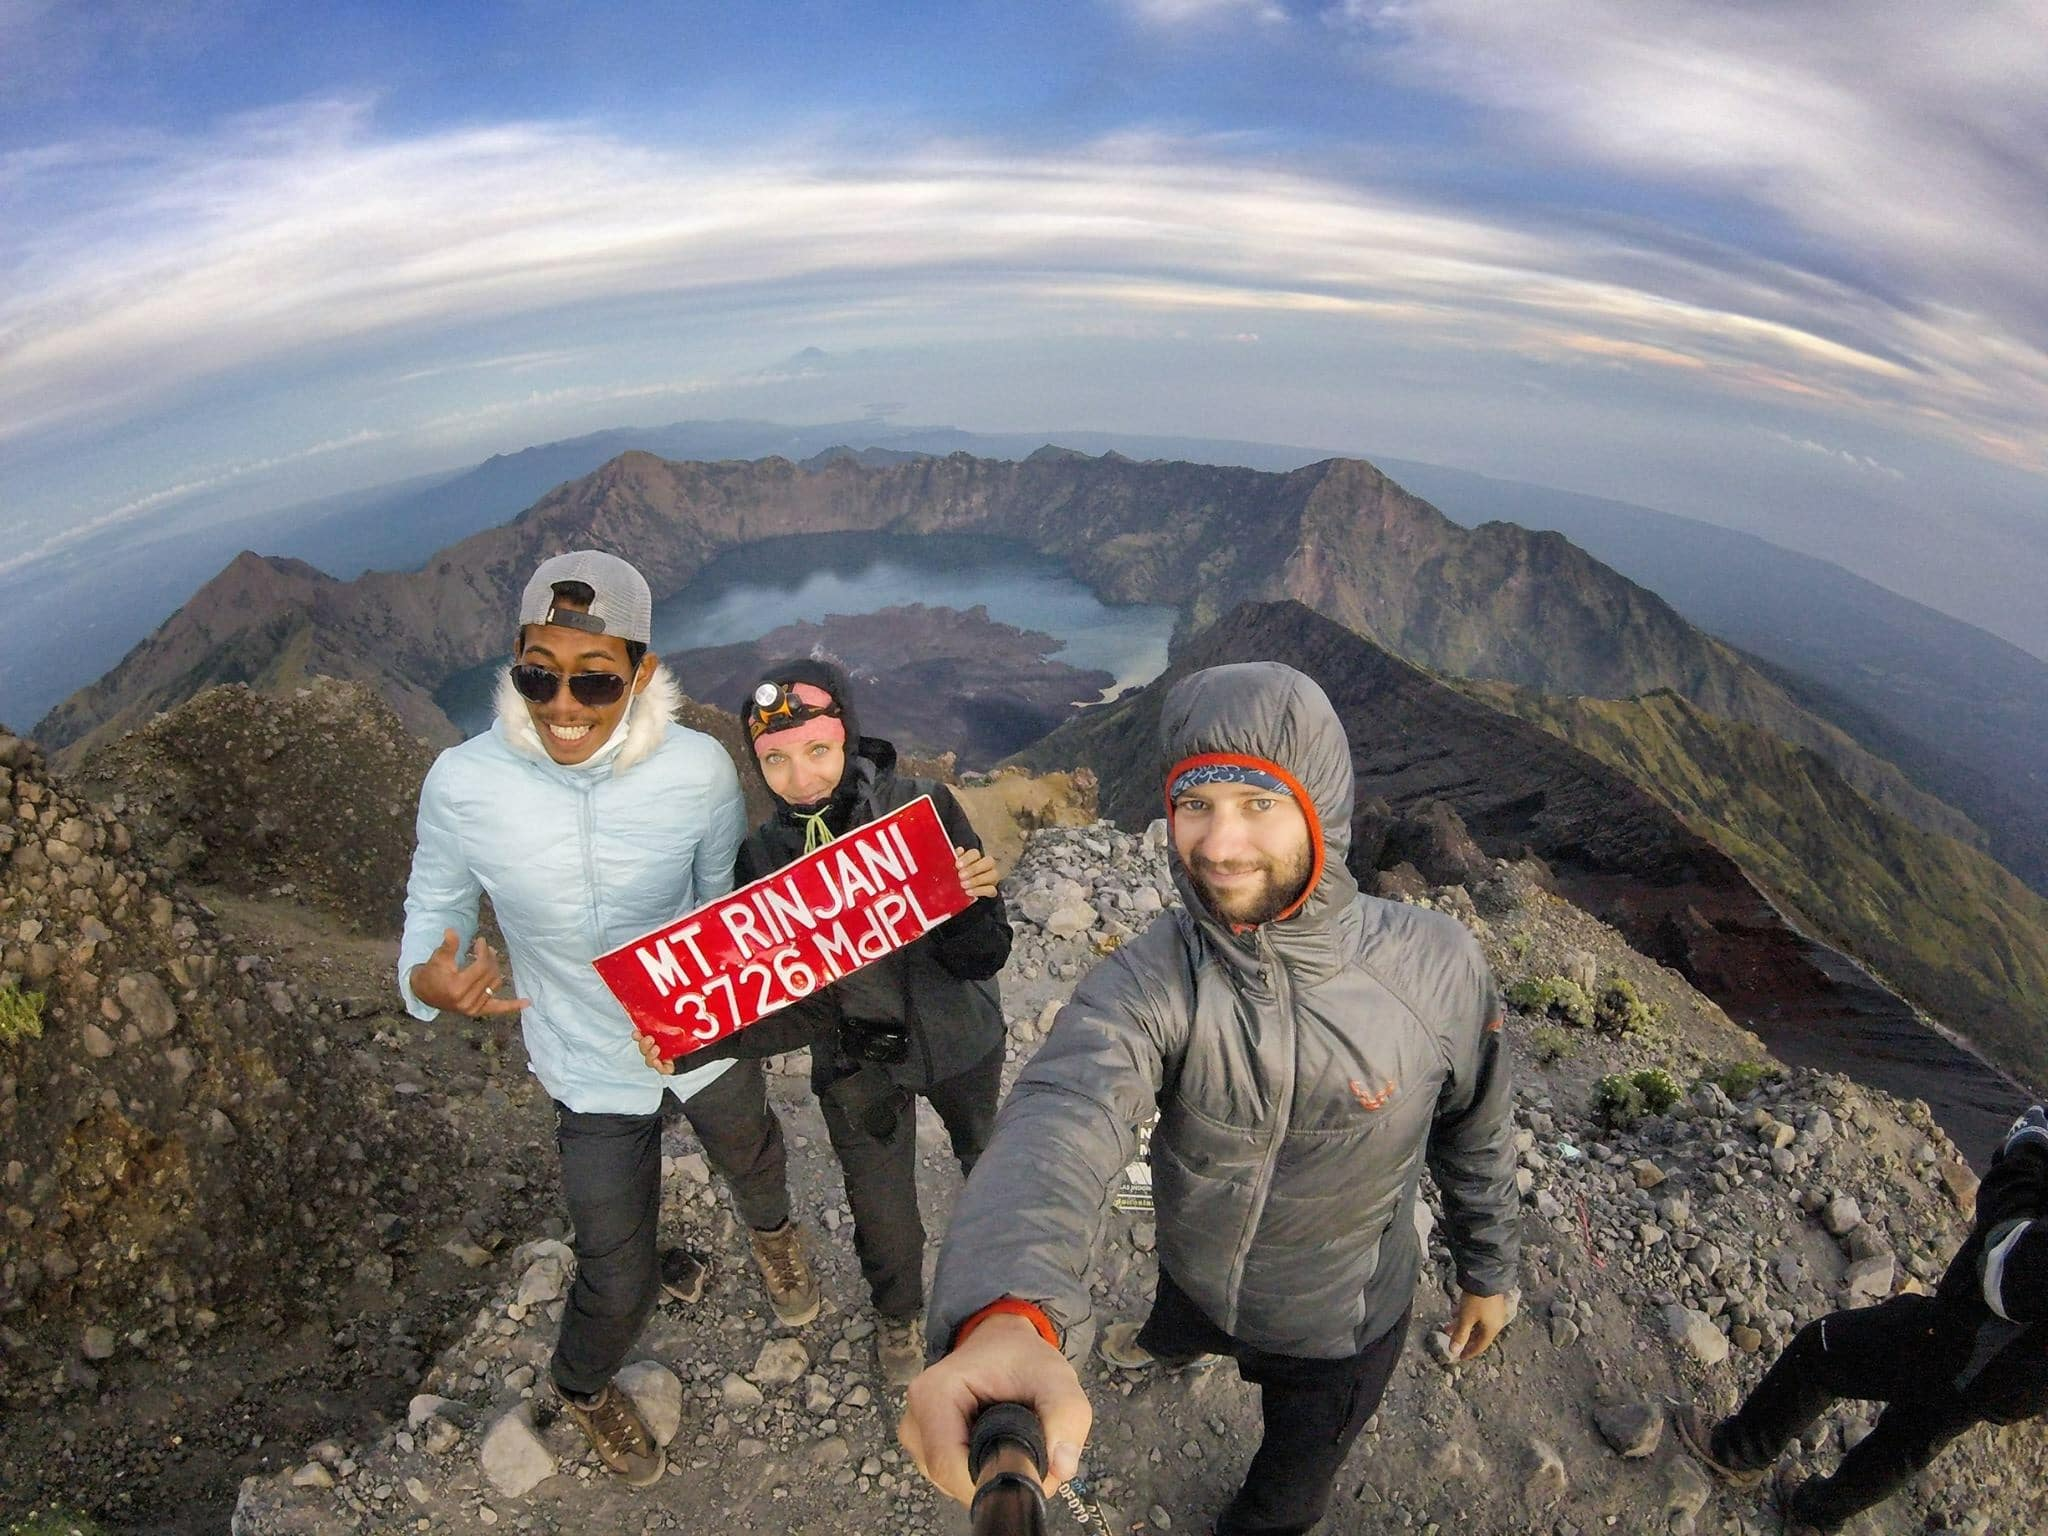 Rinjani Mountain With Bas Rinjani Trekking